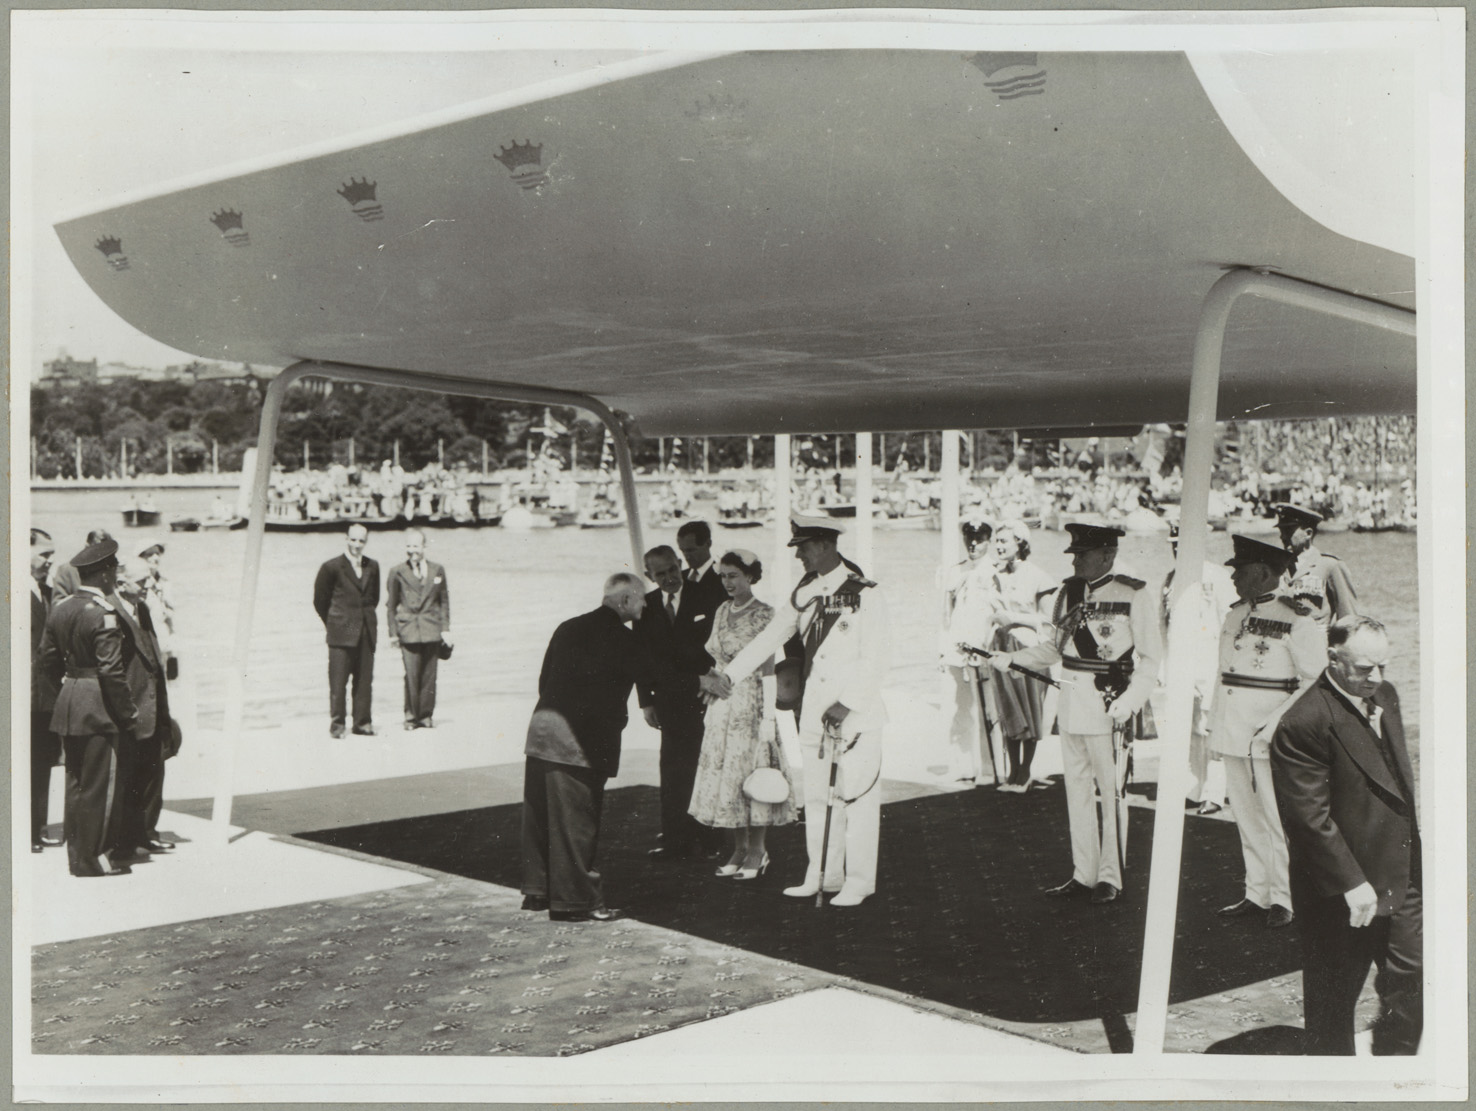 Fig. 22: Queen Elizabeth II and the Duke of Edinburgh are greeted upon arrival at Farm Cove, Sydney for the Royal Visit, 1954. NRS 4349, digital ID: 4349_a049_000005